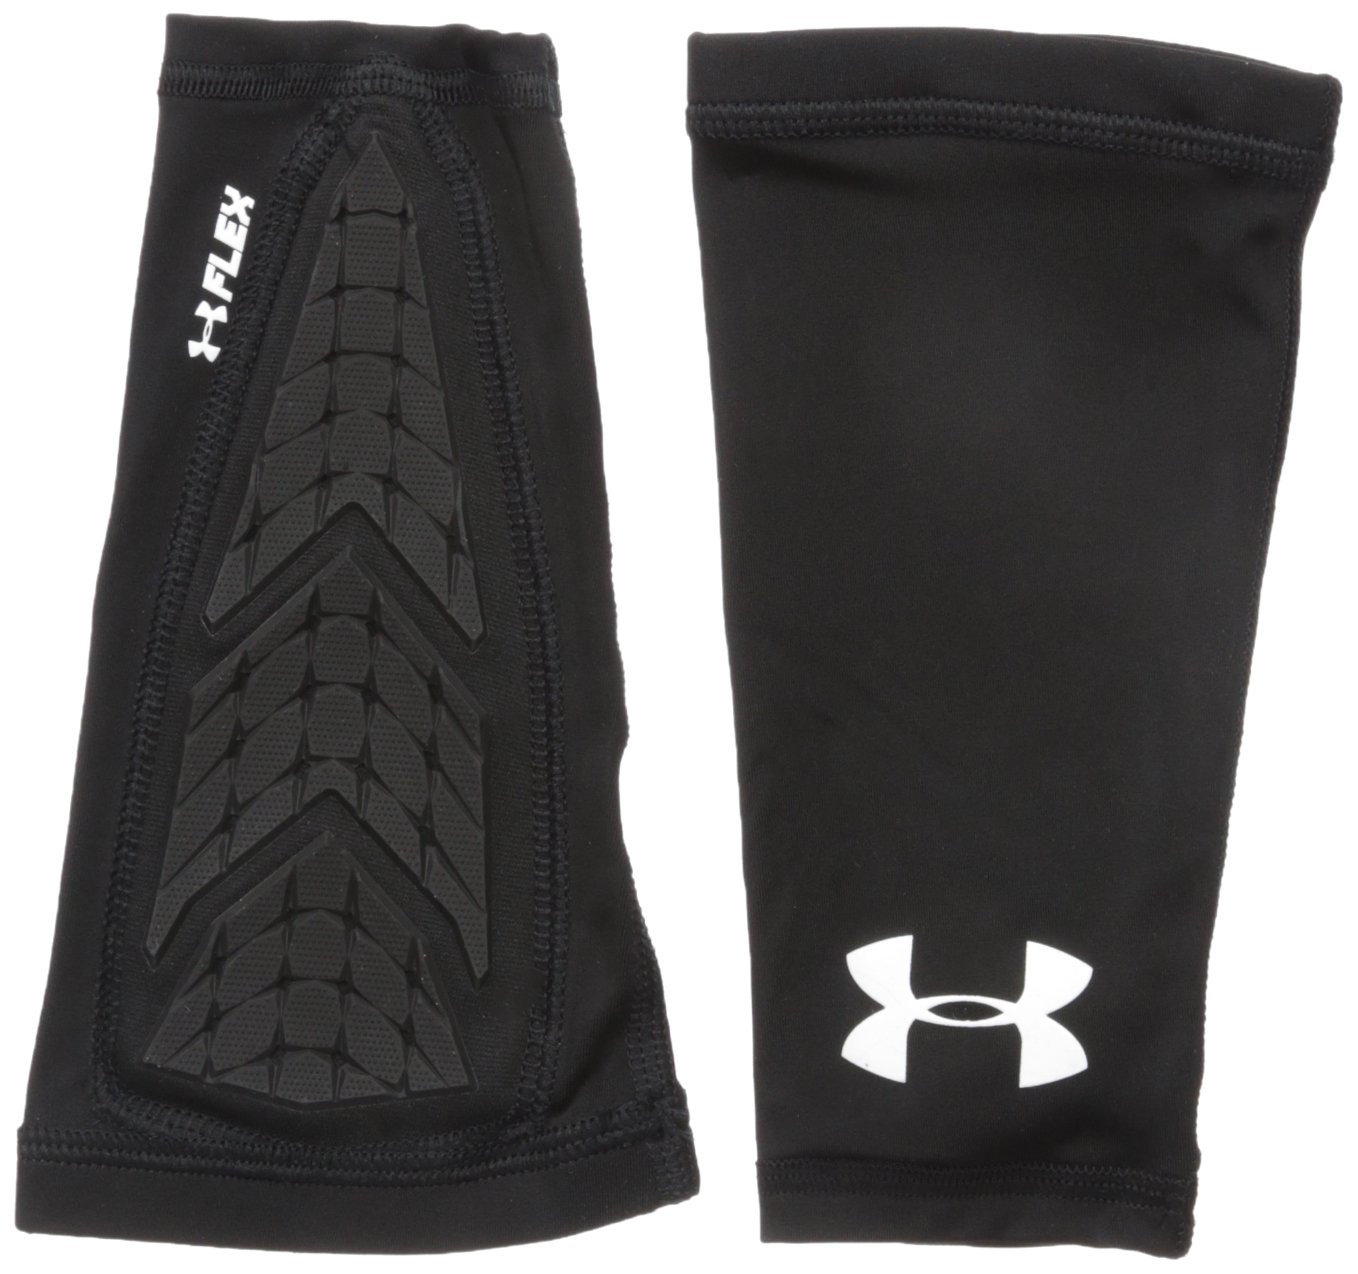 Under Armour Mens Gameday Armour Forearm Shiver Under Armour Accessories 1276708